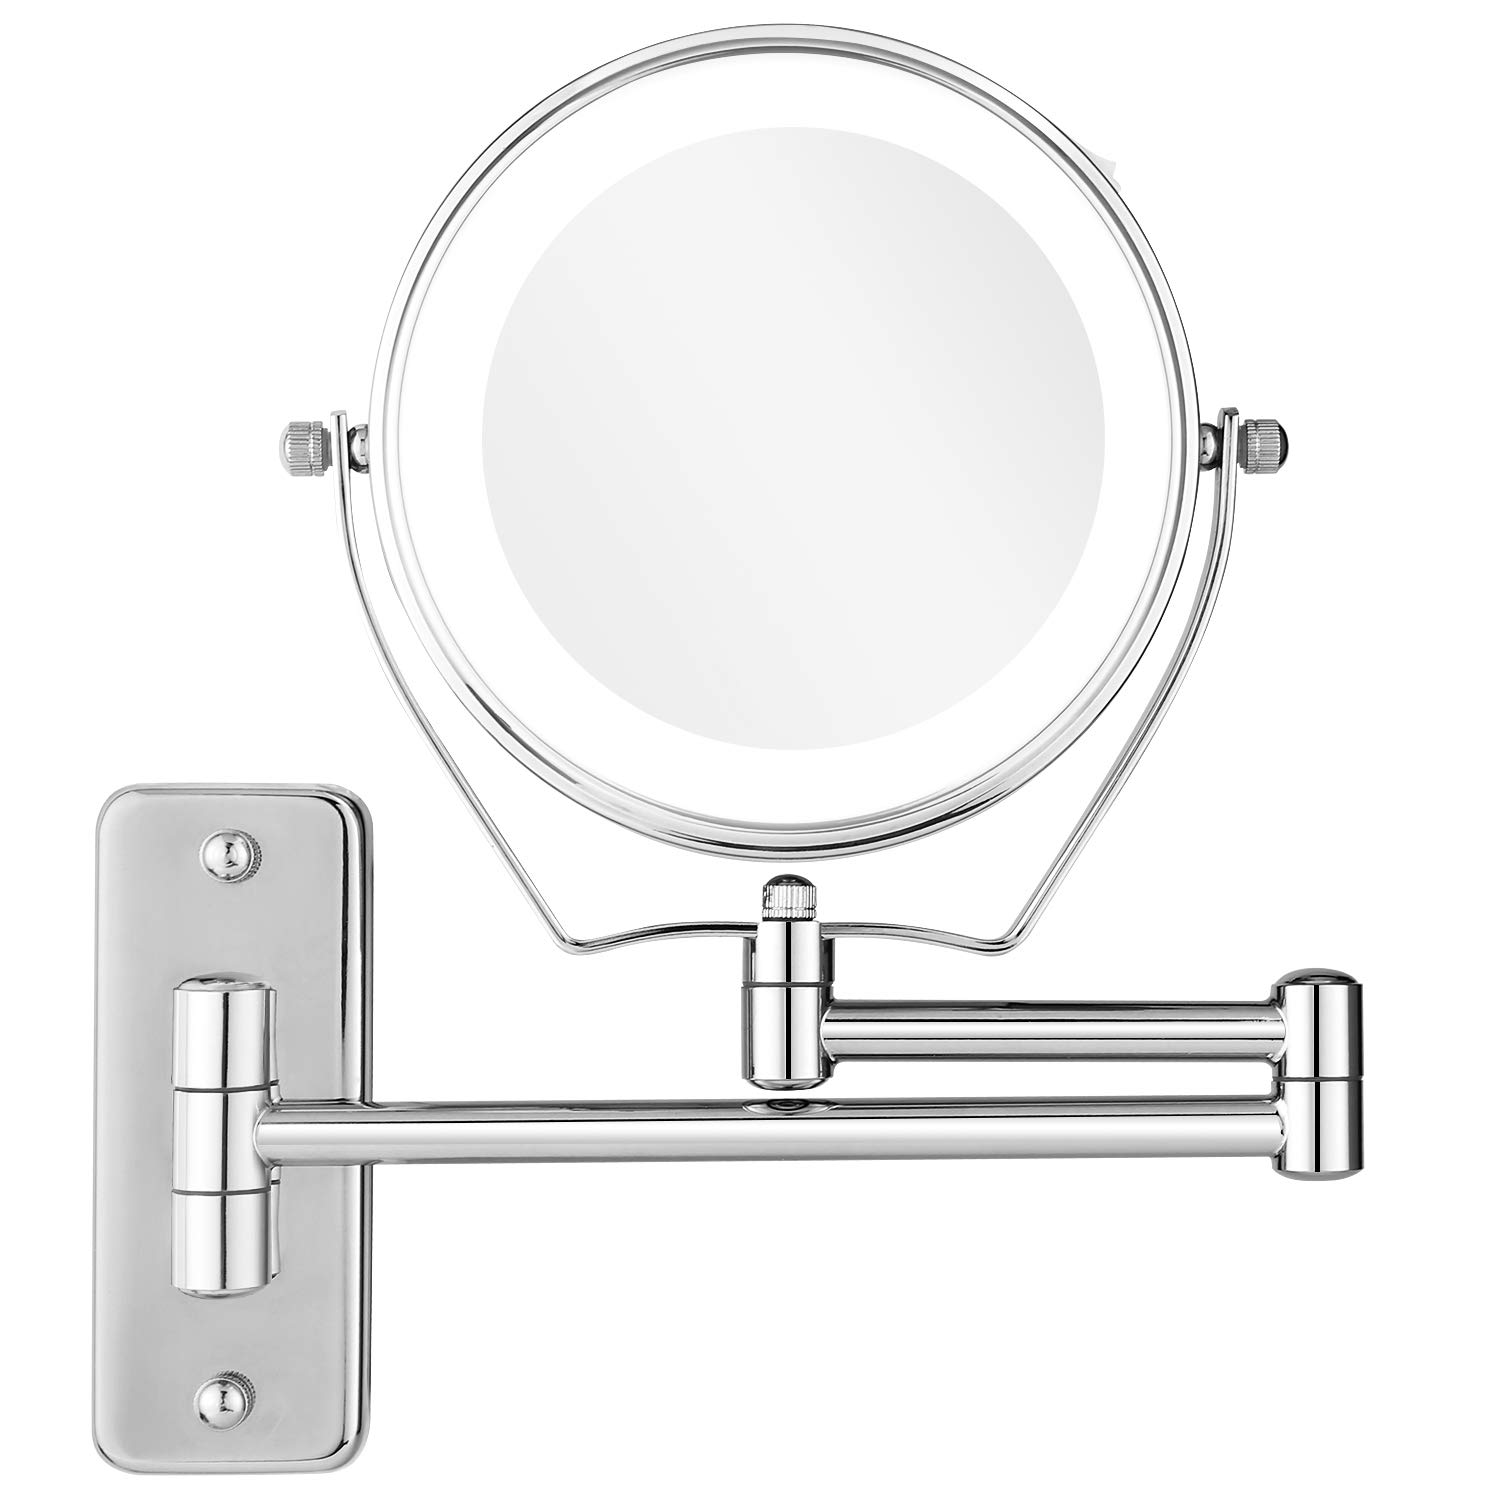 Bazal Lighted Magnifying Makeup Mirror Wall Mounted Cosmetic Vanity Mirror Double Sided Swivel Shaving Mirror for Bathroom (6 inch(7X))